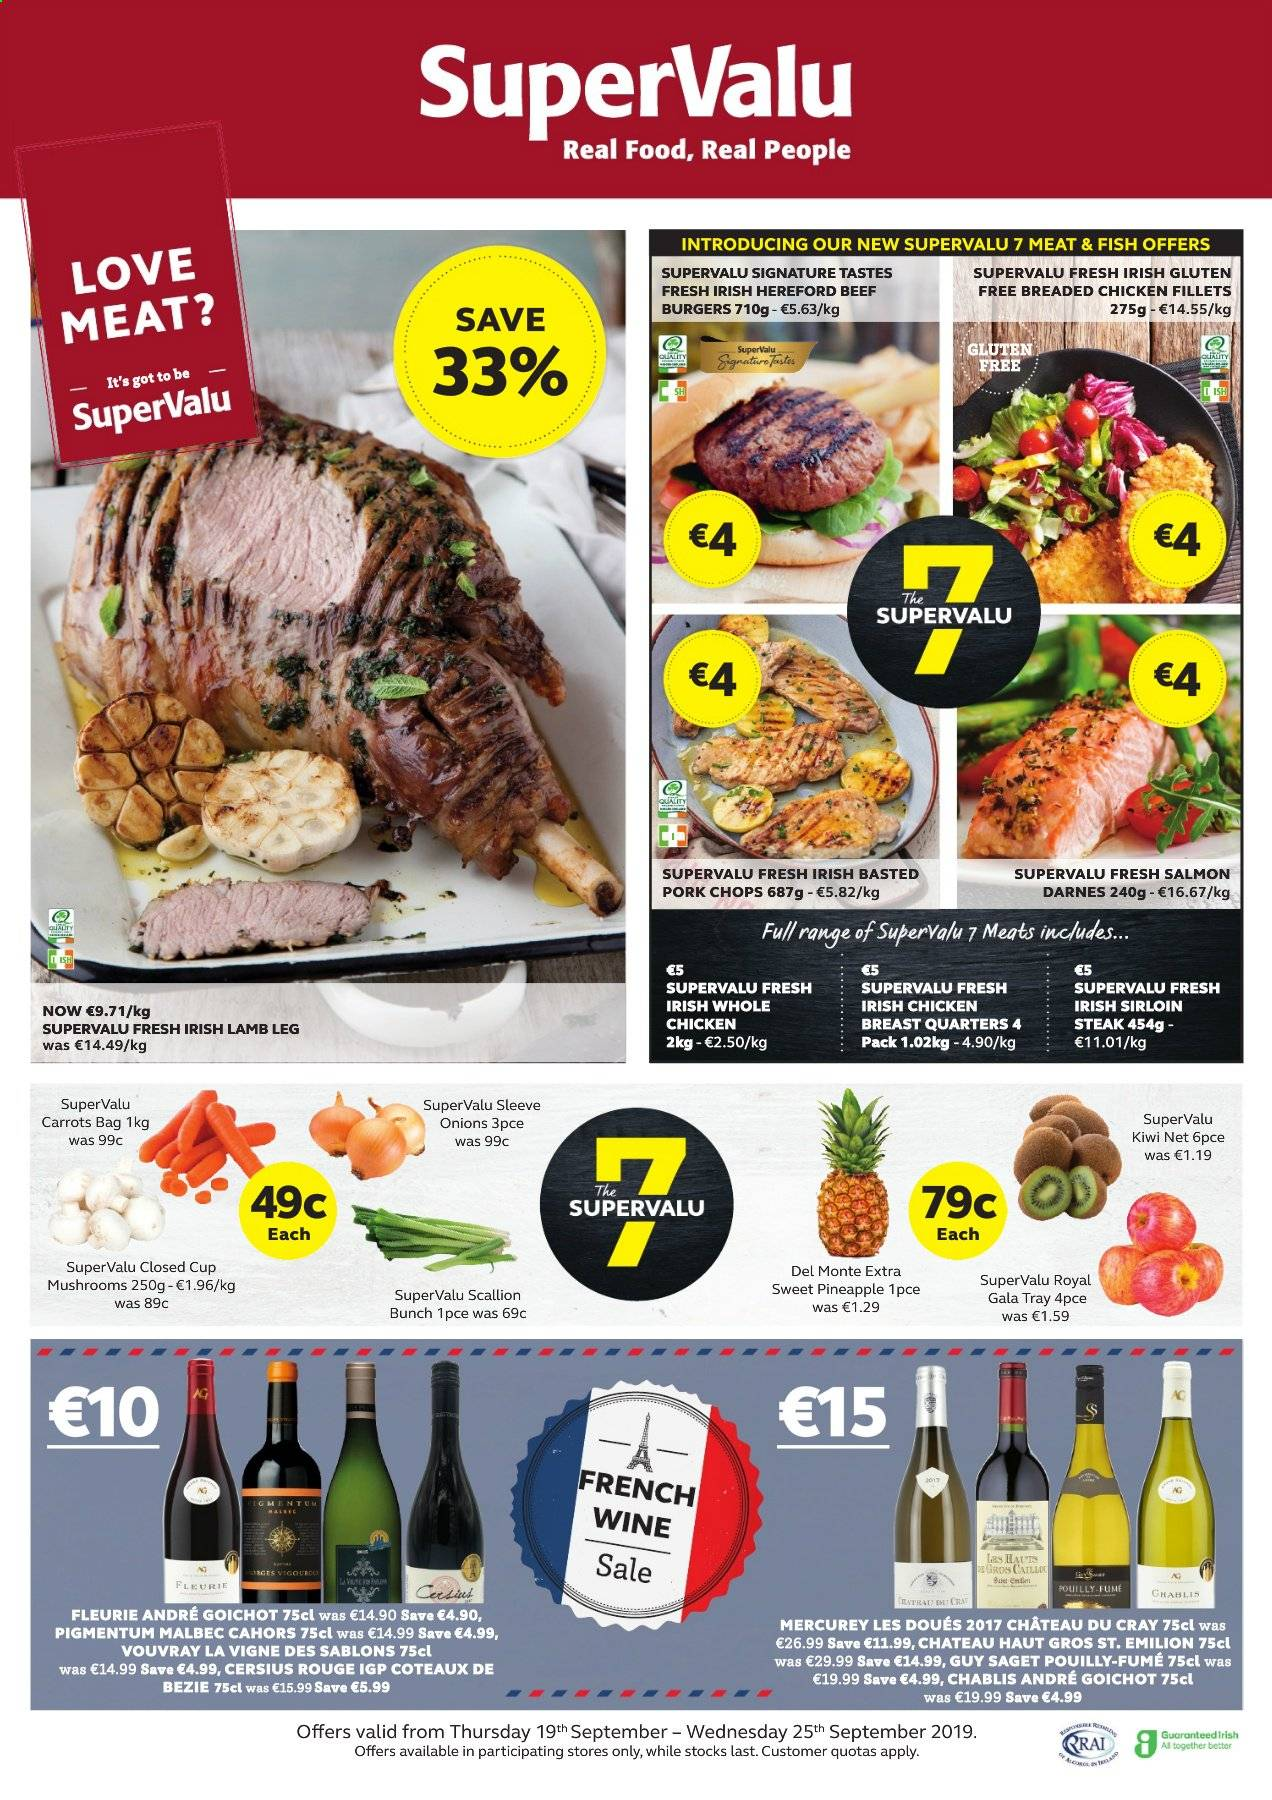 SuperValu offer  - 19.9.2019 - 25.9.2019 - Sales products - mushroom, carrots, onion, Gala apple, kiwi, pineapple, salmon, fish, hamburger, fried chicken, wine, chicken, chicken breasts, steak, pork chops, lamb meat, lamb leg. Page 1.